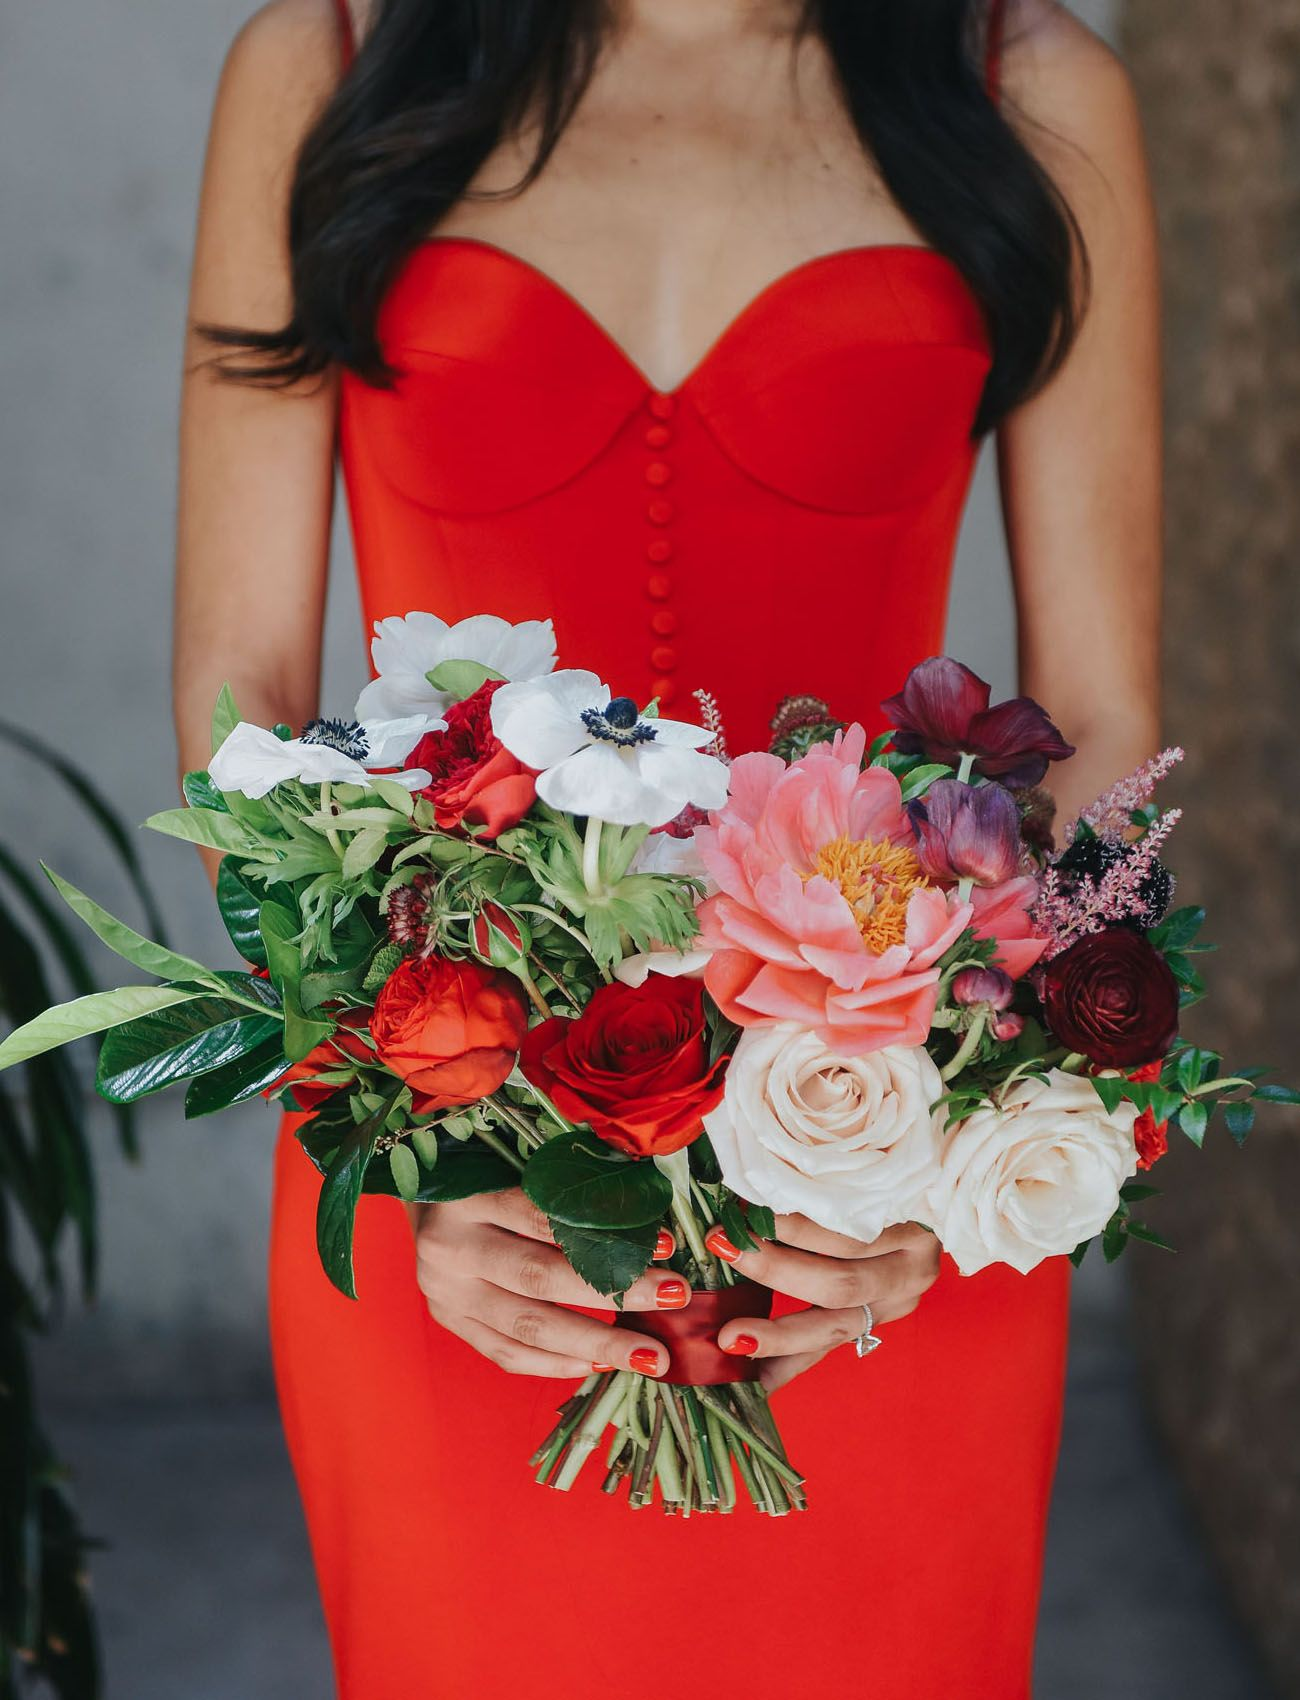 The Bride Rocked A Fiery Red Dress For This Vibrant La Wedding